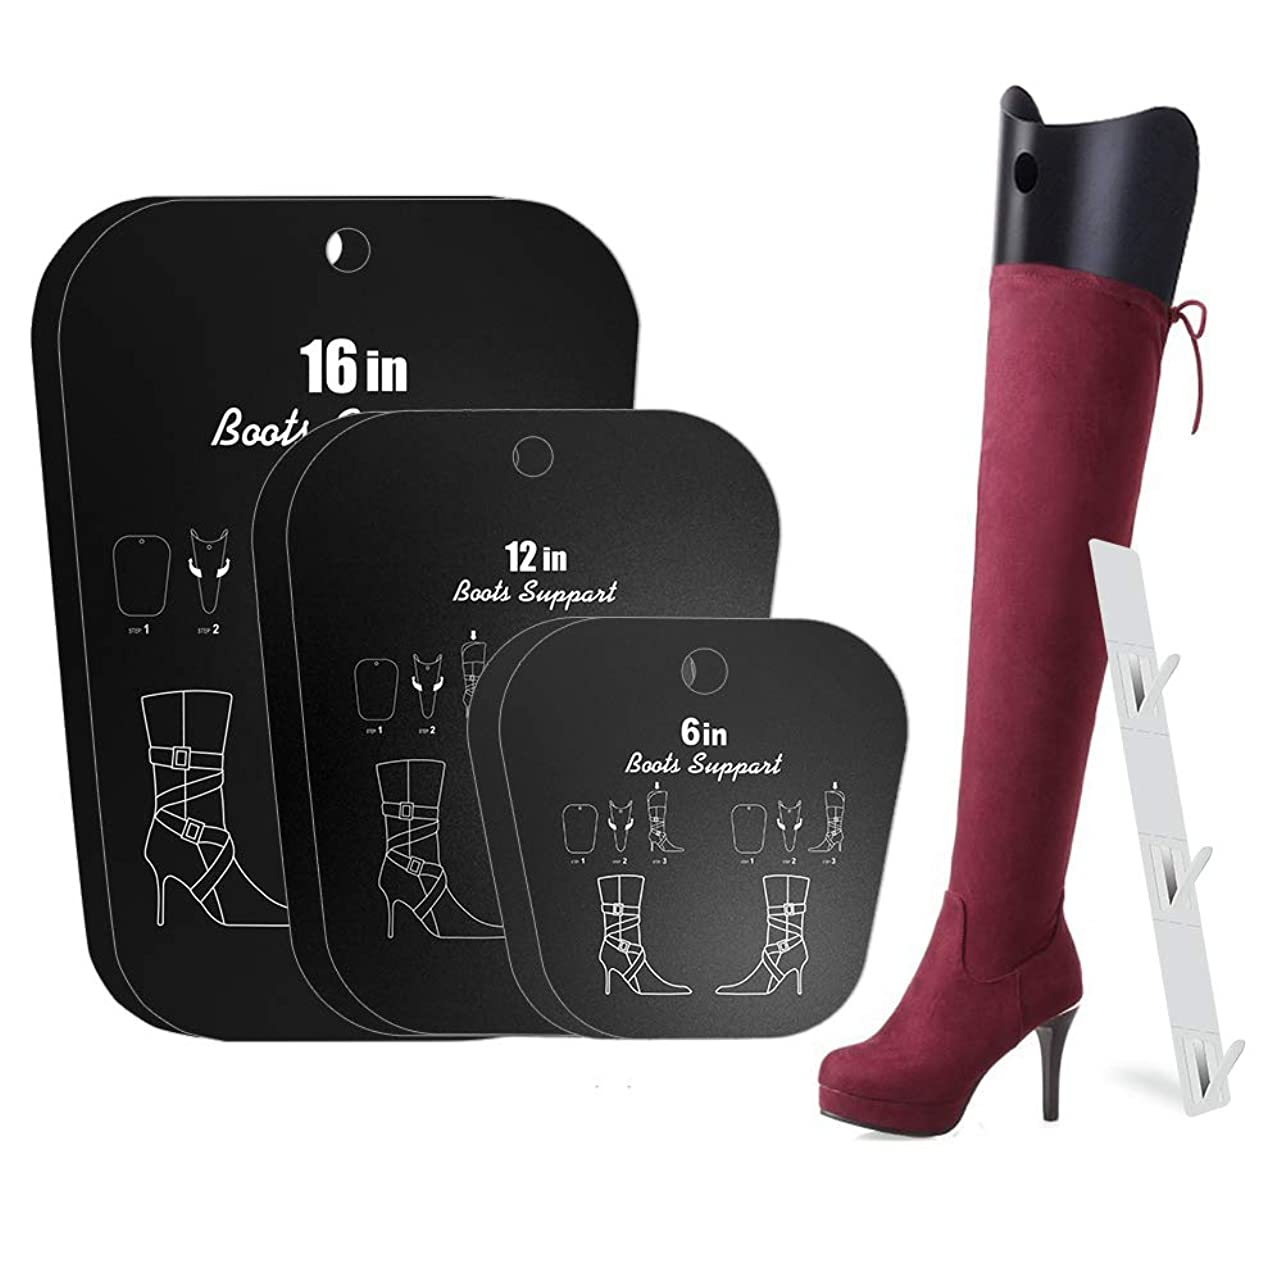 MaiHongda Boot Shaper Form Inserts Tall Boots Support for Men Women wjw781288913945